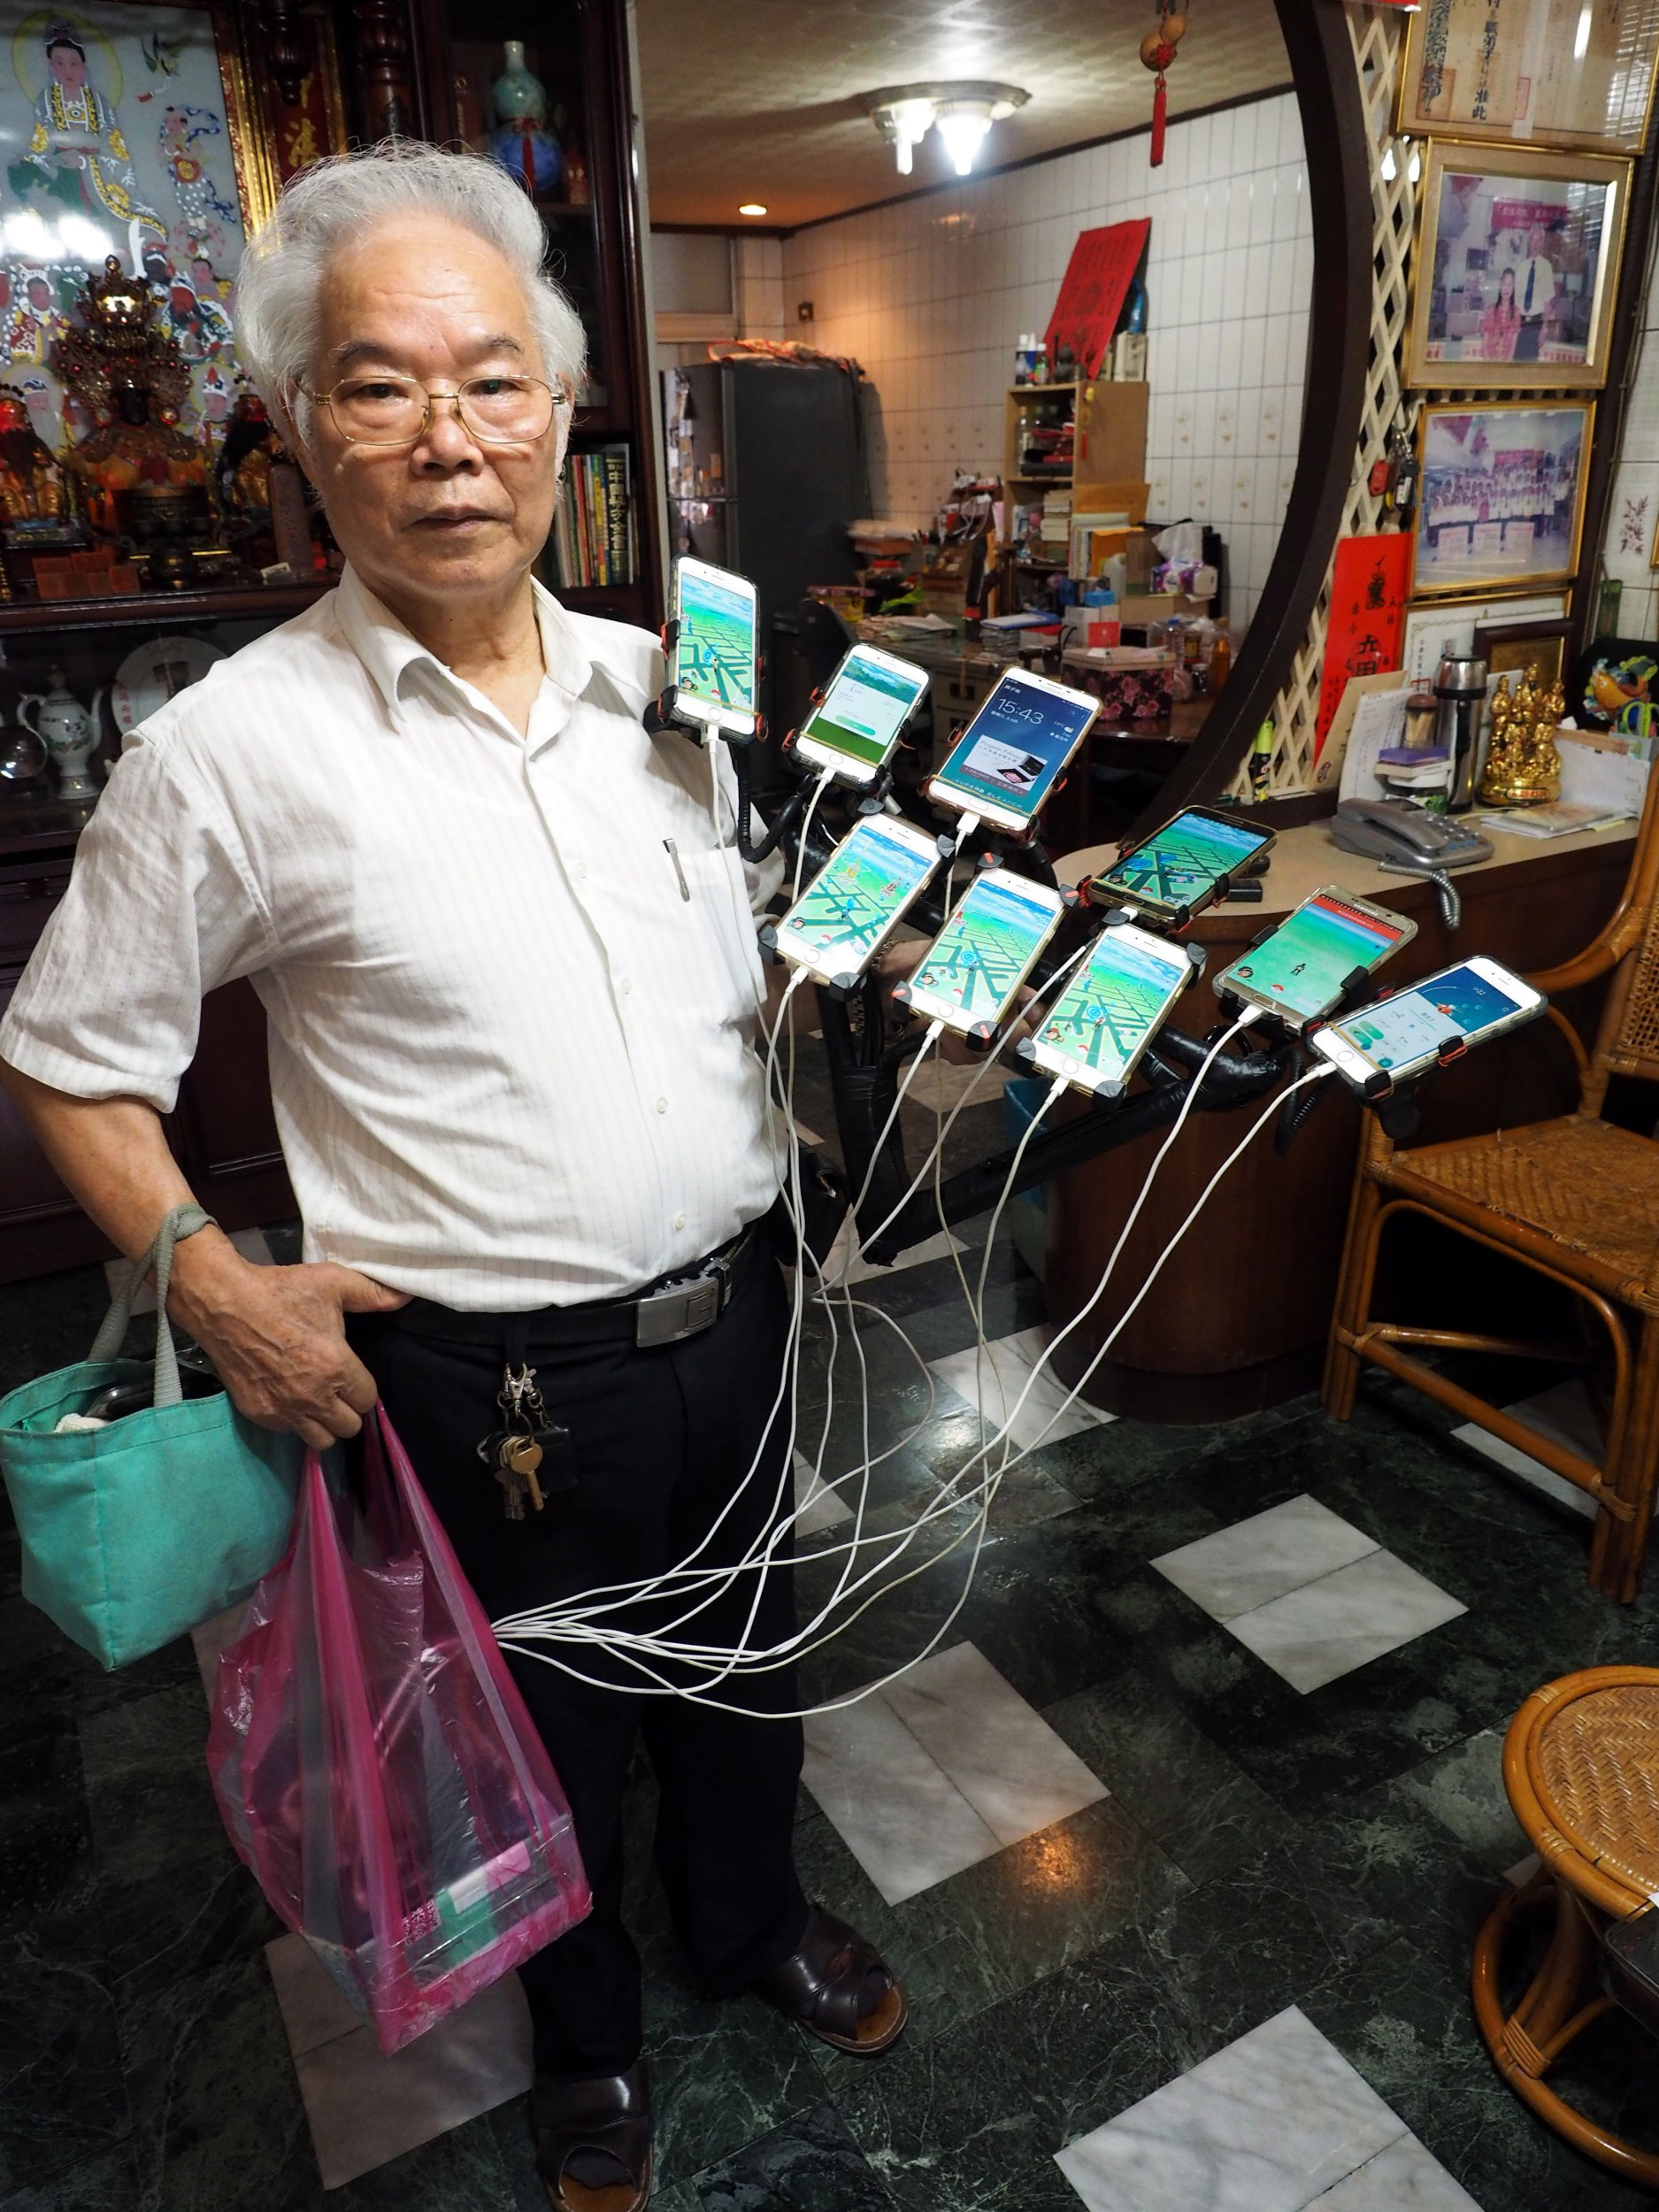 epa06935284 Chen San-yuan, a 59-year-old Feng Shui Master, carries 11 cellphones on a frame and a bag of batteries to go to catch Pokemon in New Taipei City, Taiwan, 08 August 2018. Chen was hooked on Pokemon Go in 2016 when his grandson taught him how to play the game. Now he has mounted 11 cellphones on his bike, charged by a bag of batteries, and spends all his spare time catching Pokemon on streets or in parks, sometimes staying outside until 4 am. Chen wants to increase his cellphones to 15. After TV reported him, Chen has become a celebrity. Many people call him 'Uncle Pokemon' and take photos with him. EPA/DAVID CHANG